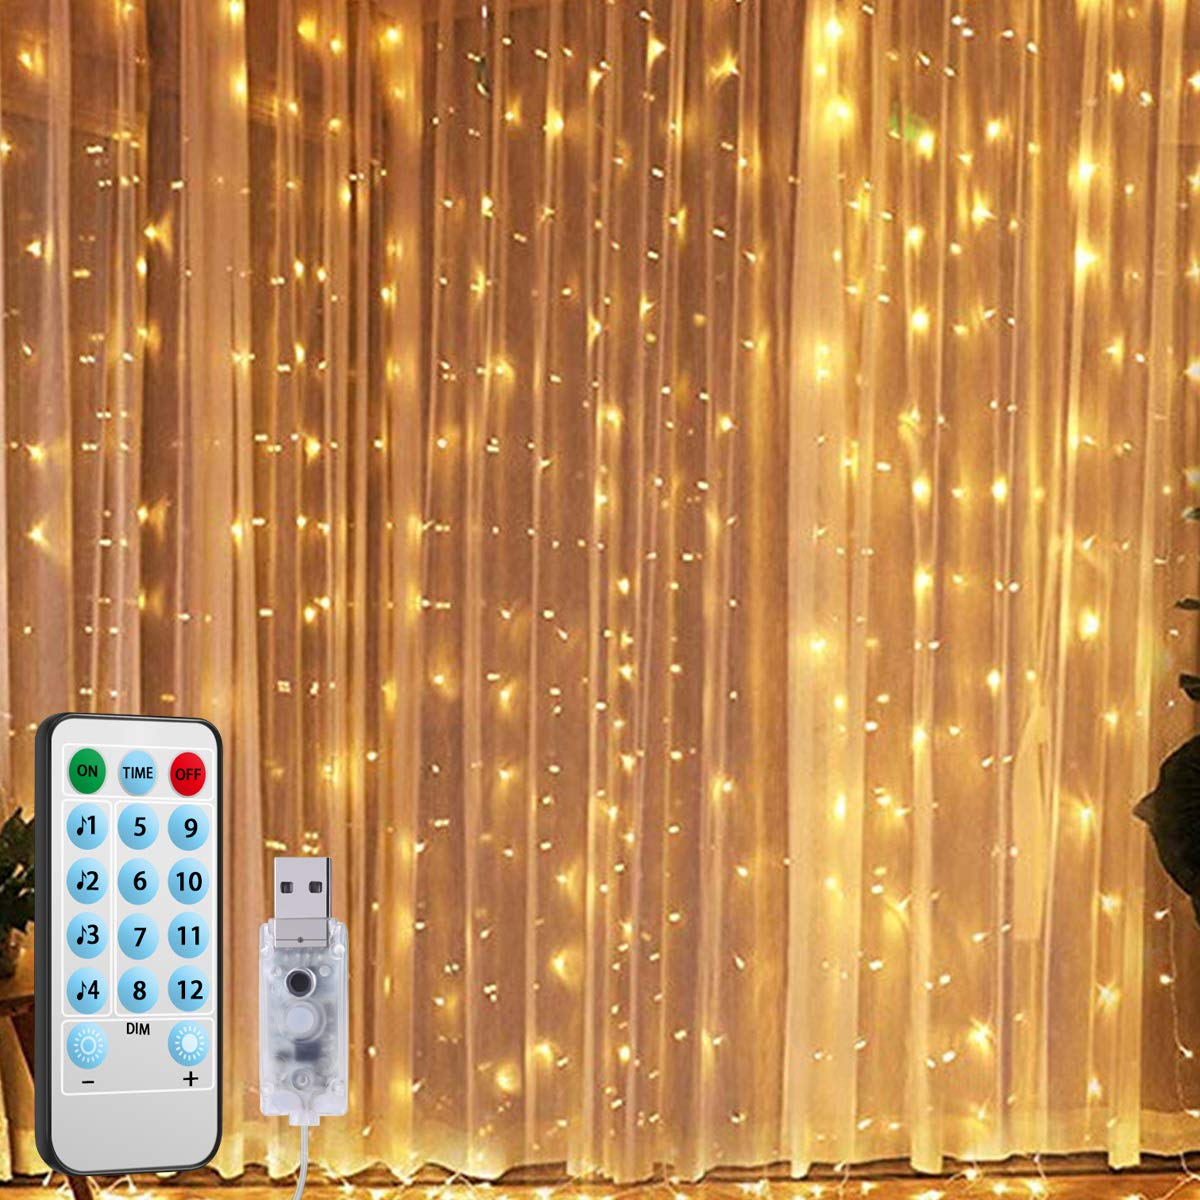 Remote Control LED Curtain Light With Voice Activated USB Powered 300 LEDs Fairy String Lights For Chrismas/Bedroom/Parties DA